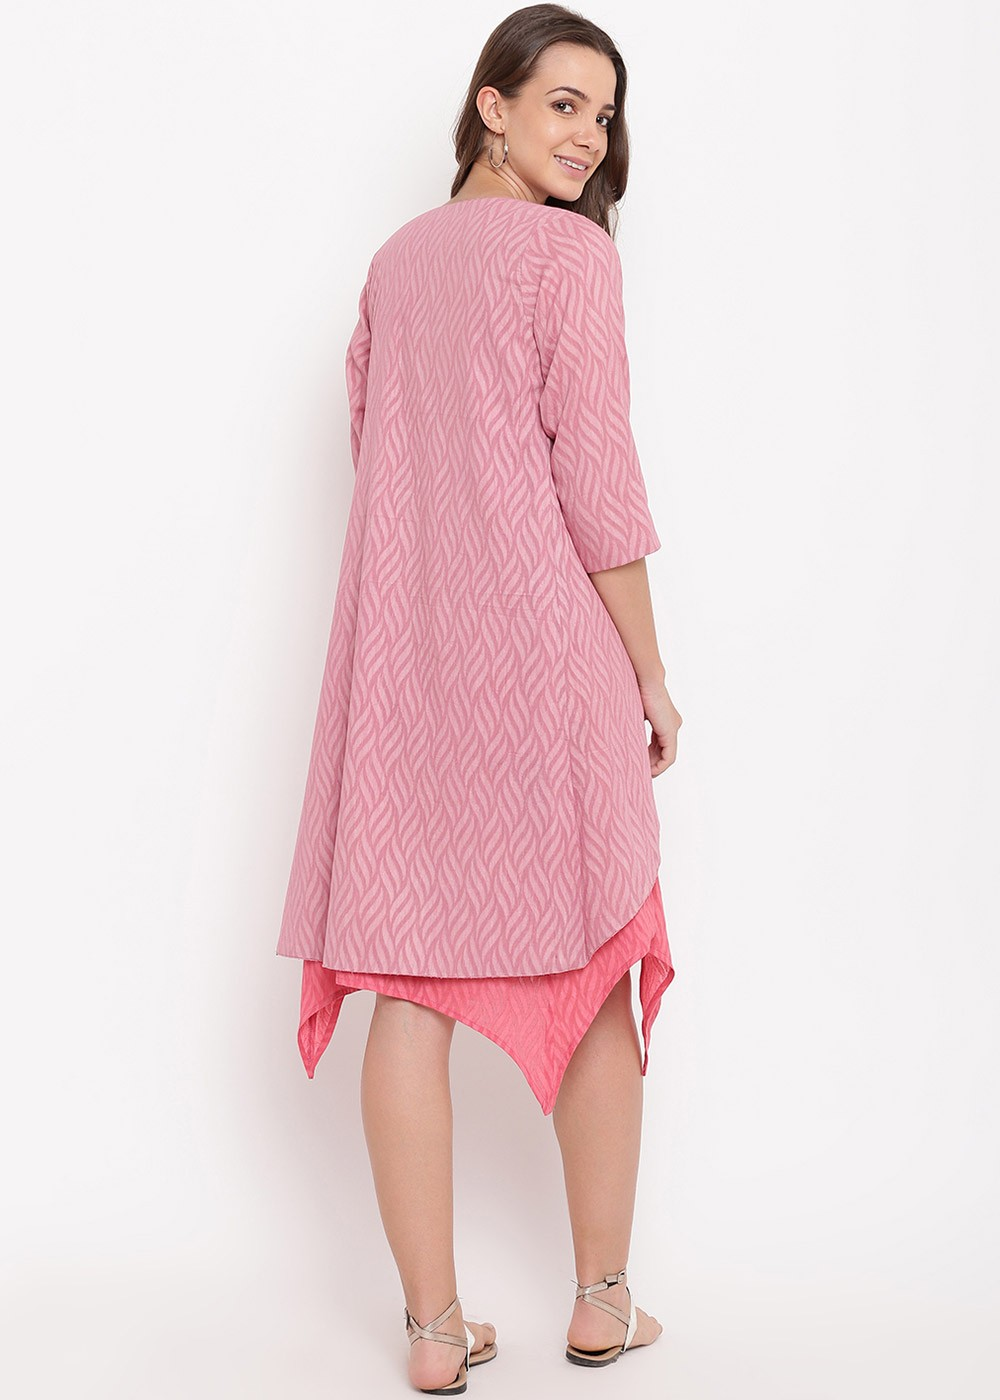 7d650c556cfa Coral Pink Dobby Indo Western Dress With Jacket 441KR15